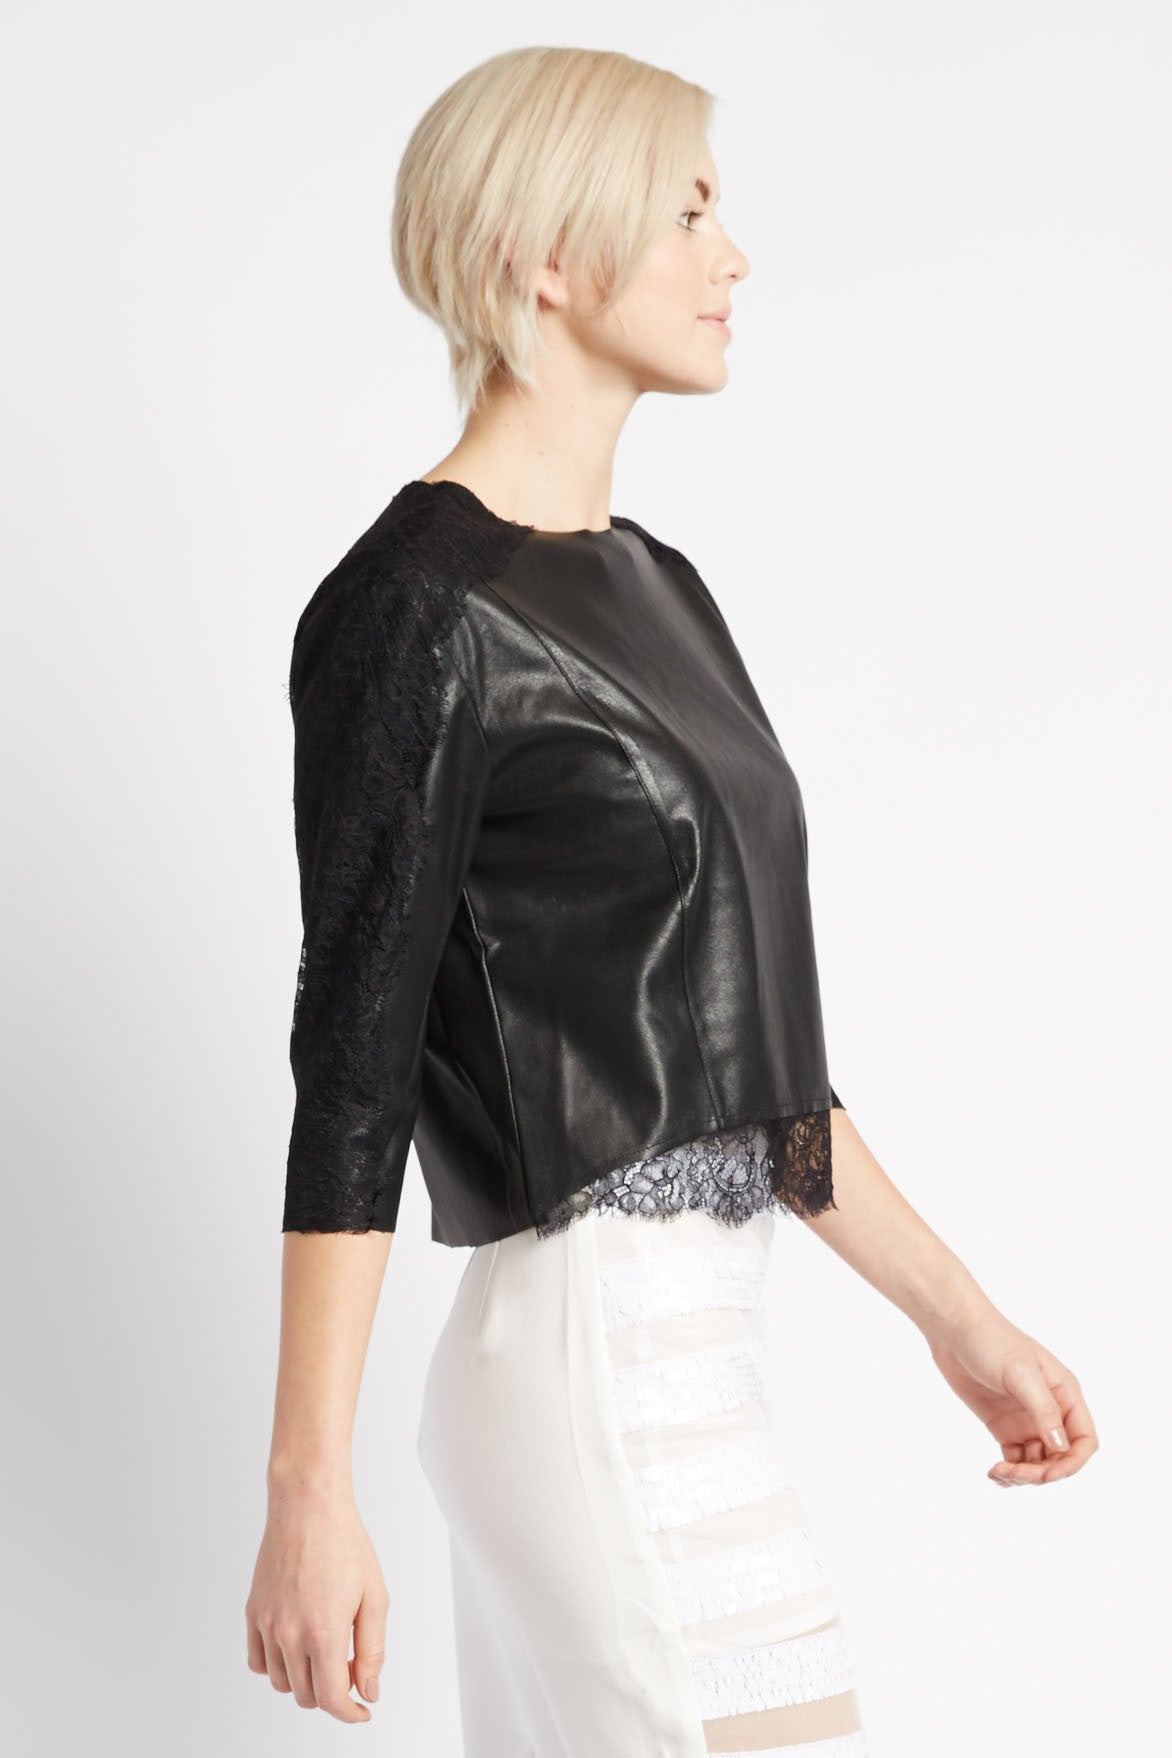 Leather and Lace Top by Search for Sanity